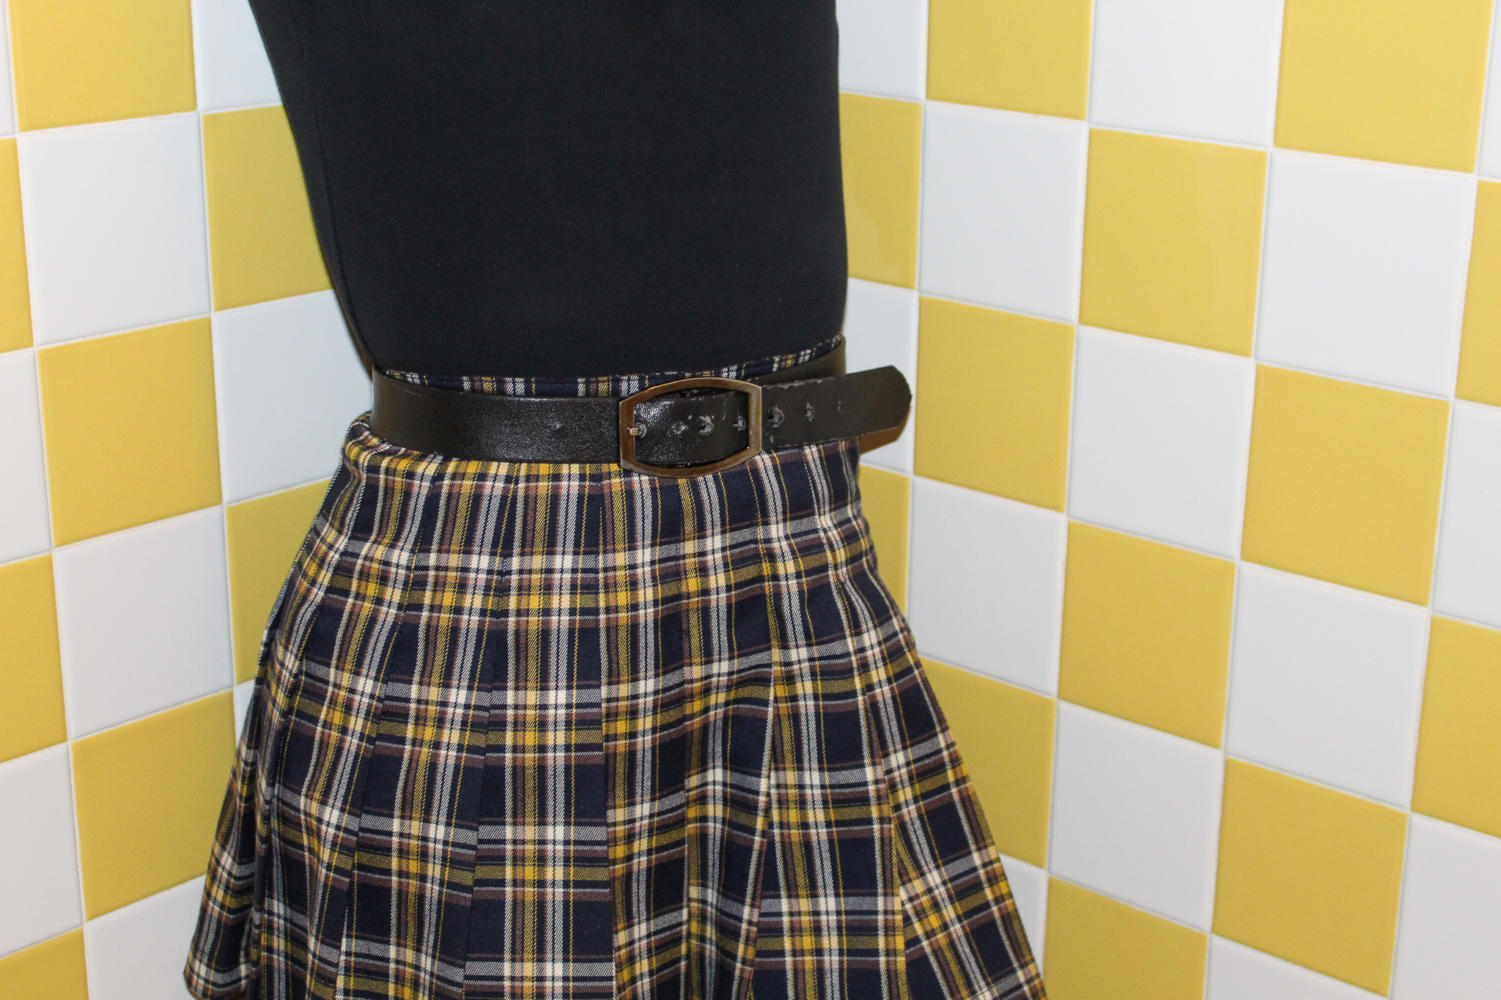 Plaid's vintage look is a current fashion trend worn by many Coppell High School students. This tartan skirt was purchased at Forever 21.